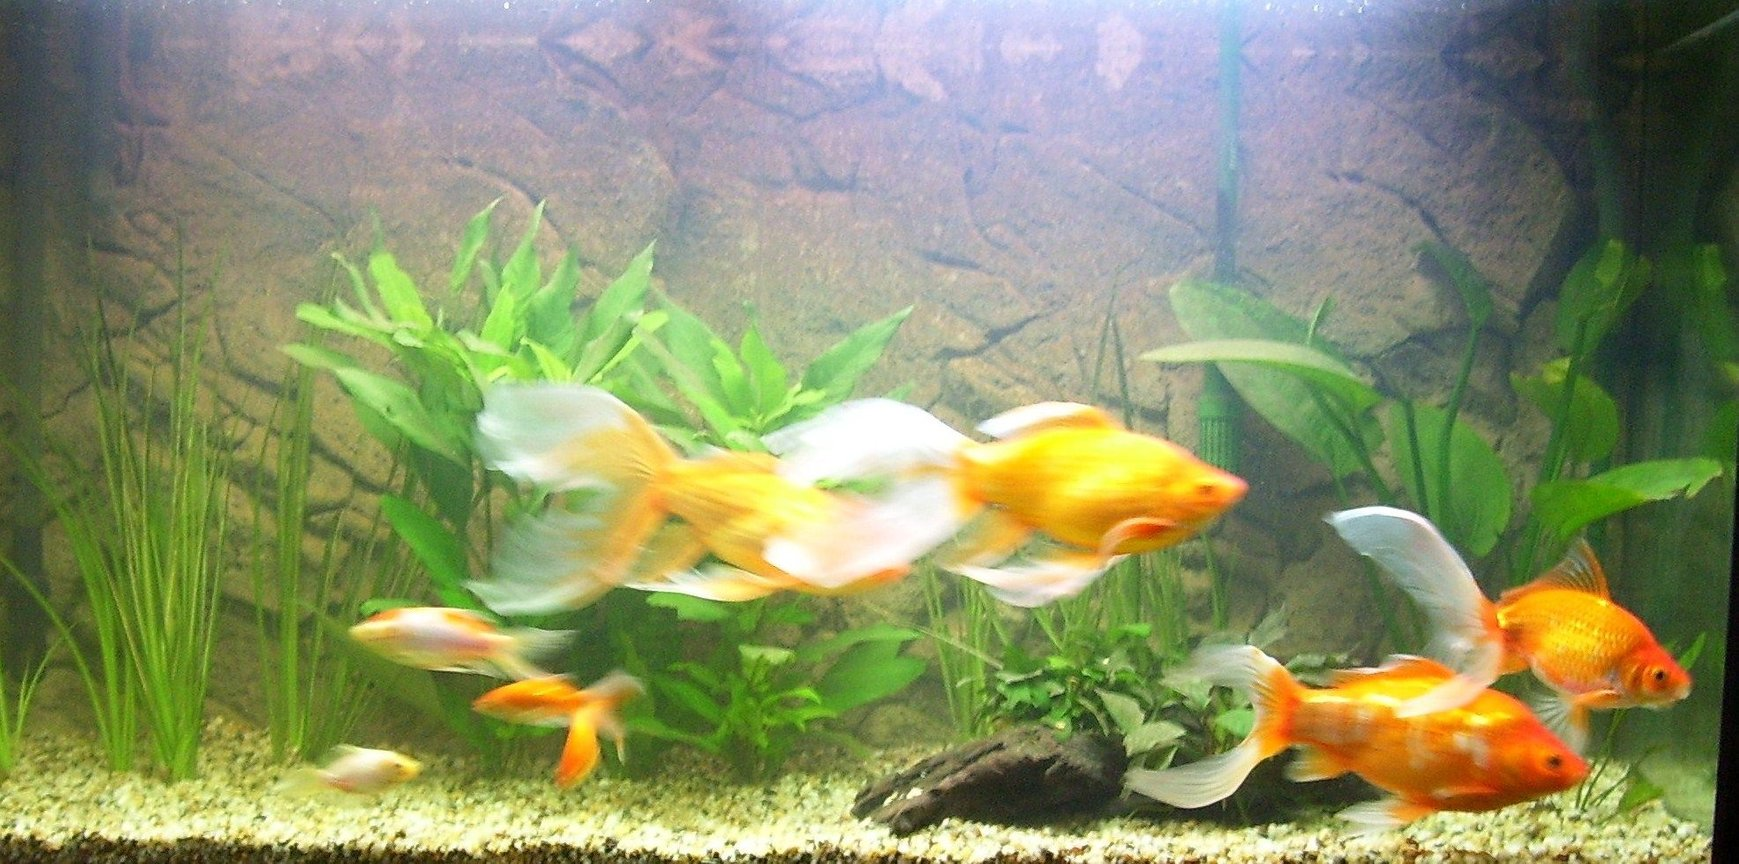 freshwater fish - carassius auratus - fantail goldfish, red stocking in 64 gallons tank - pic taken today.